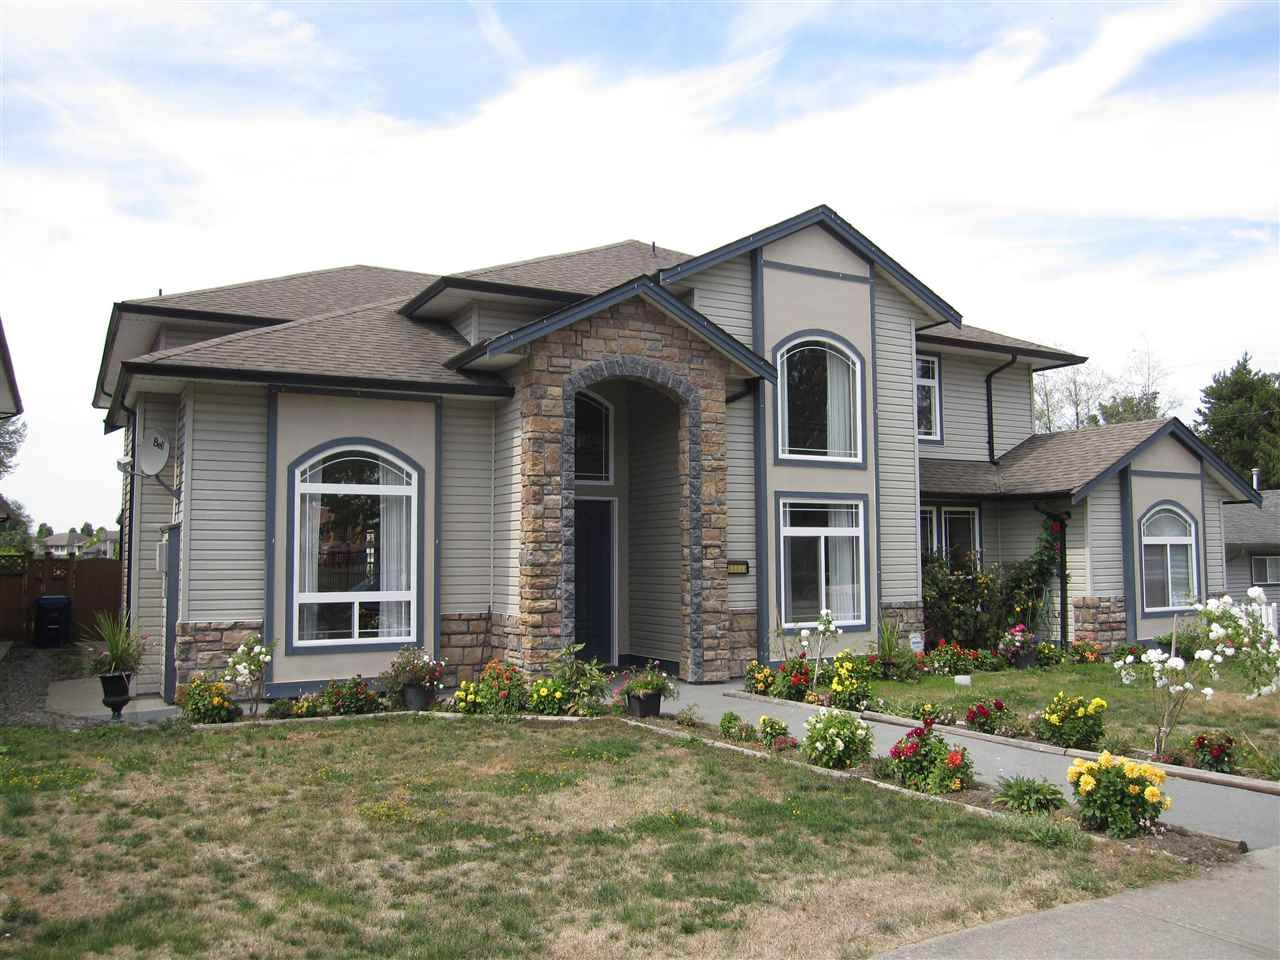 Photo 19: Photos: 12239 240 Street in Maple Ridge: East Central House for sale : MLS®# R2017770